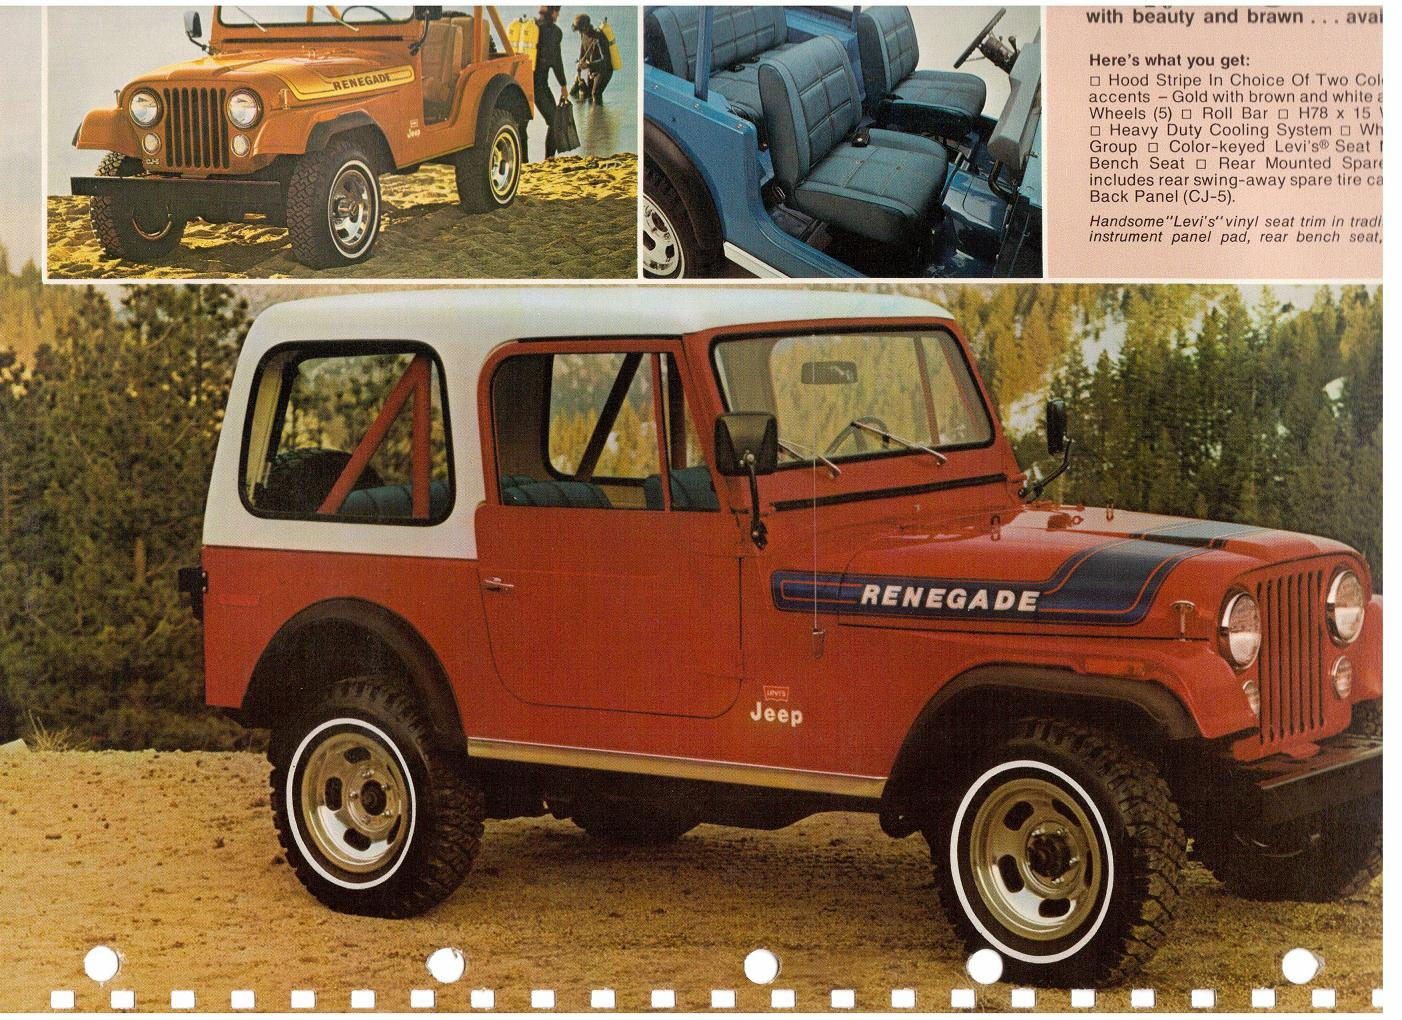 Jeep CJ7: différences entre versions - Page 2 Numris2711201221514red